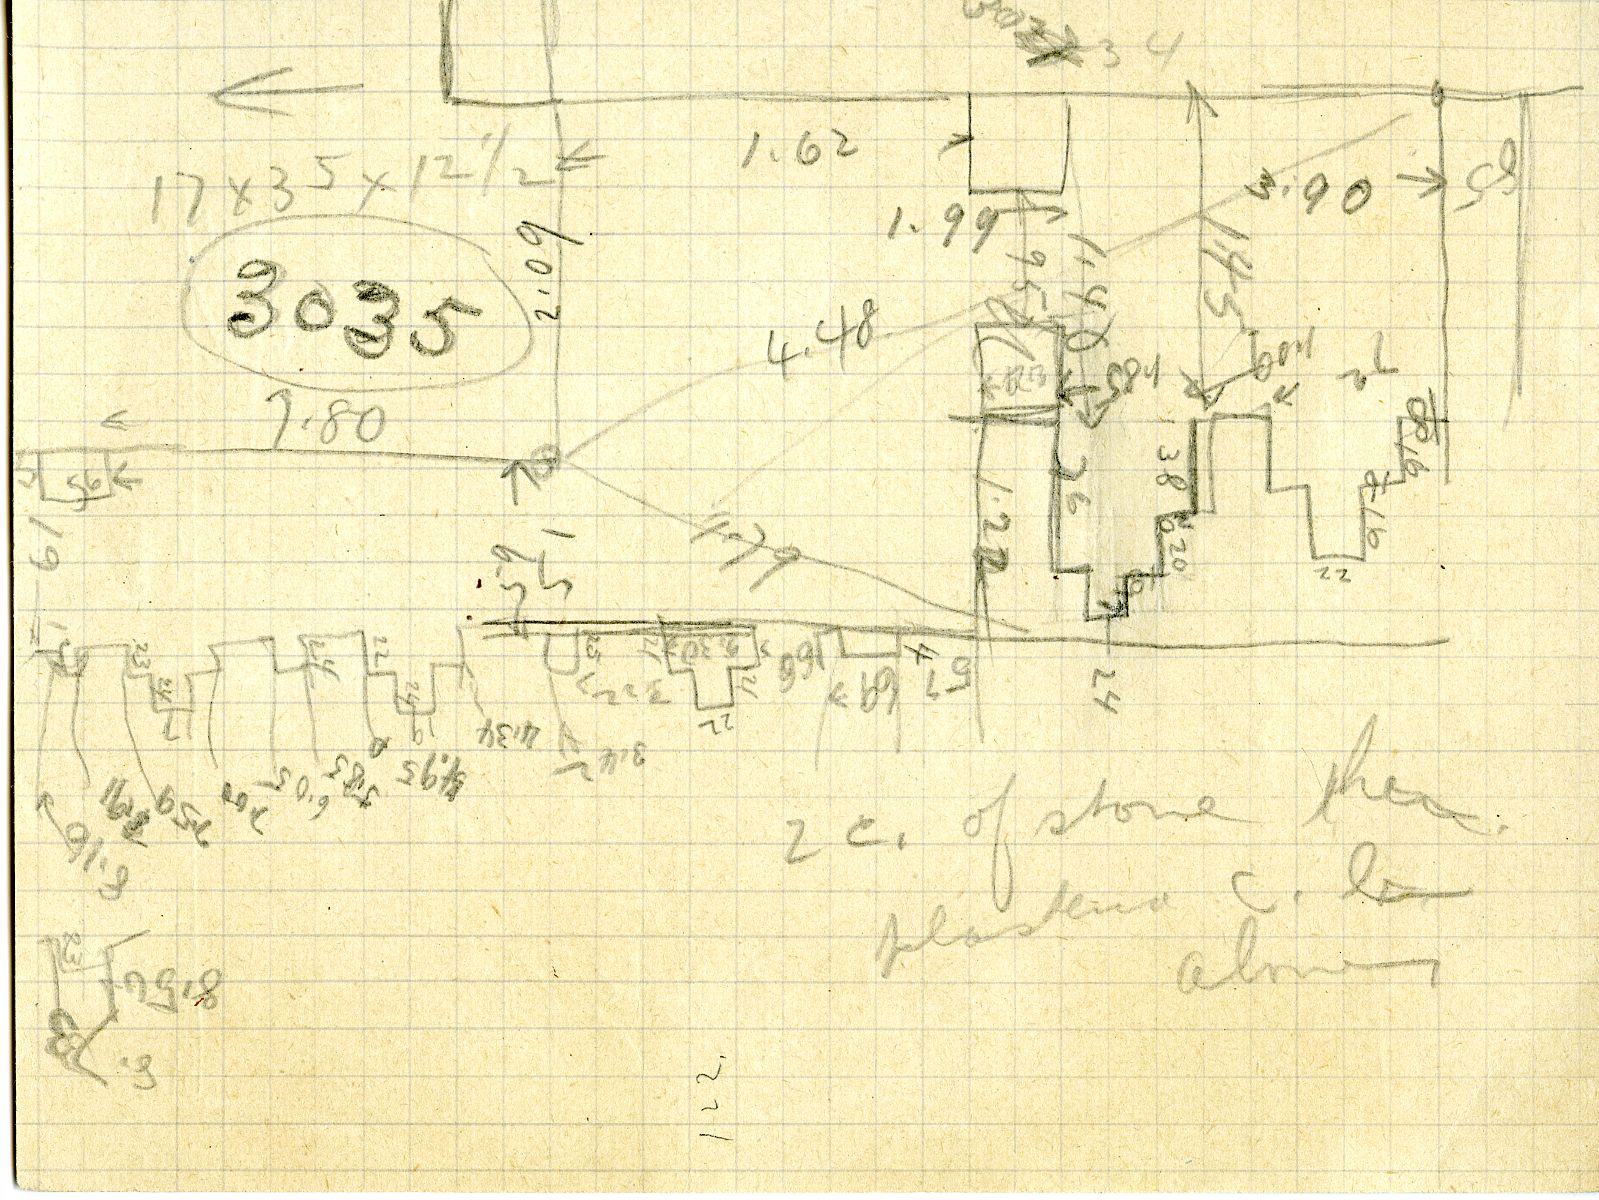 Maps and plans: Sketch plan of G 3035, G 3043